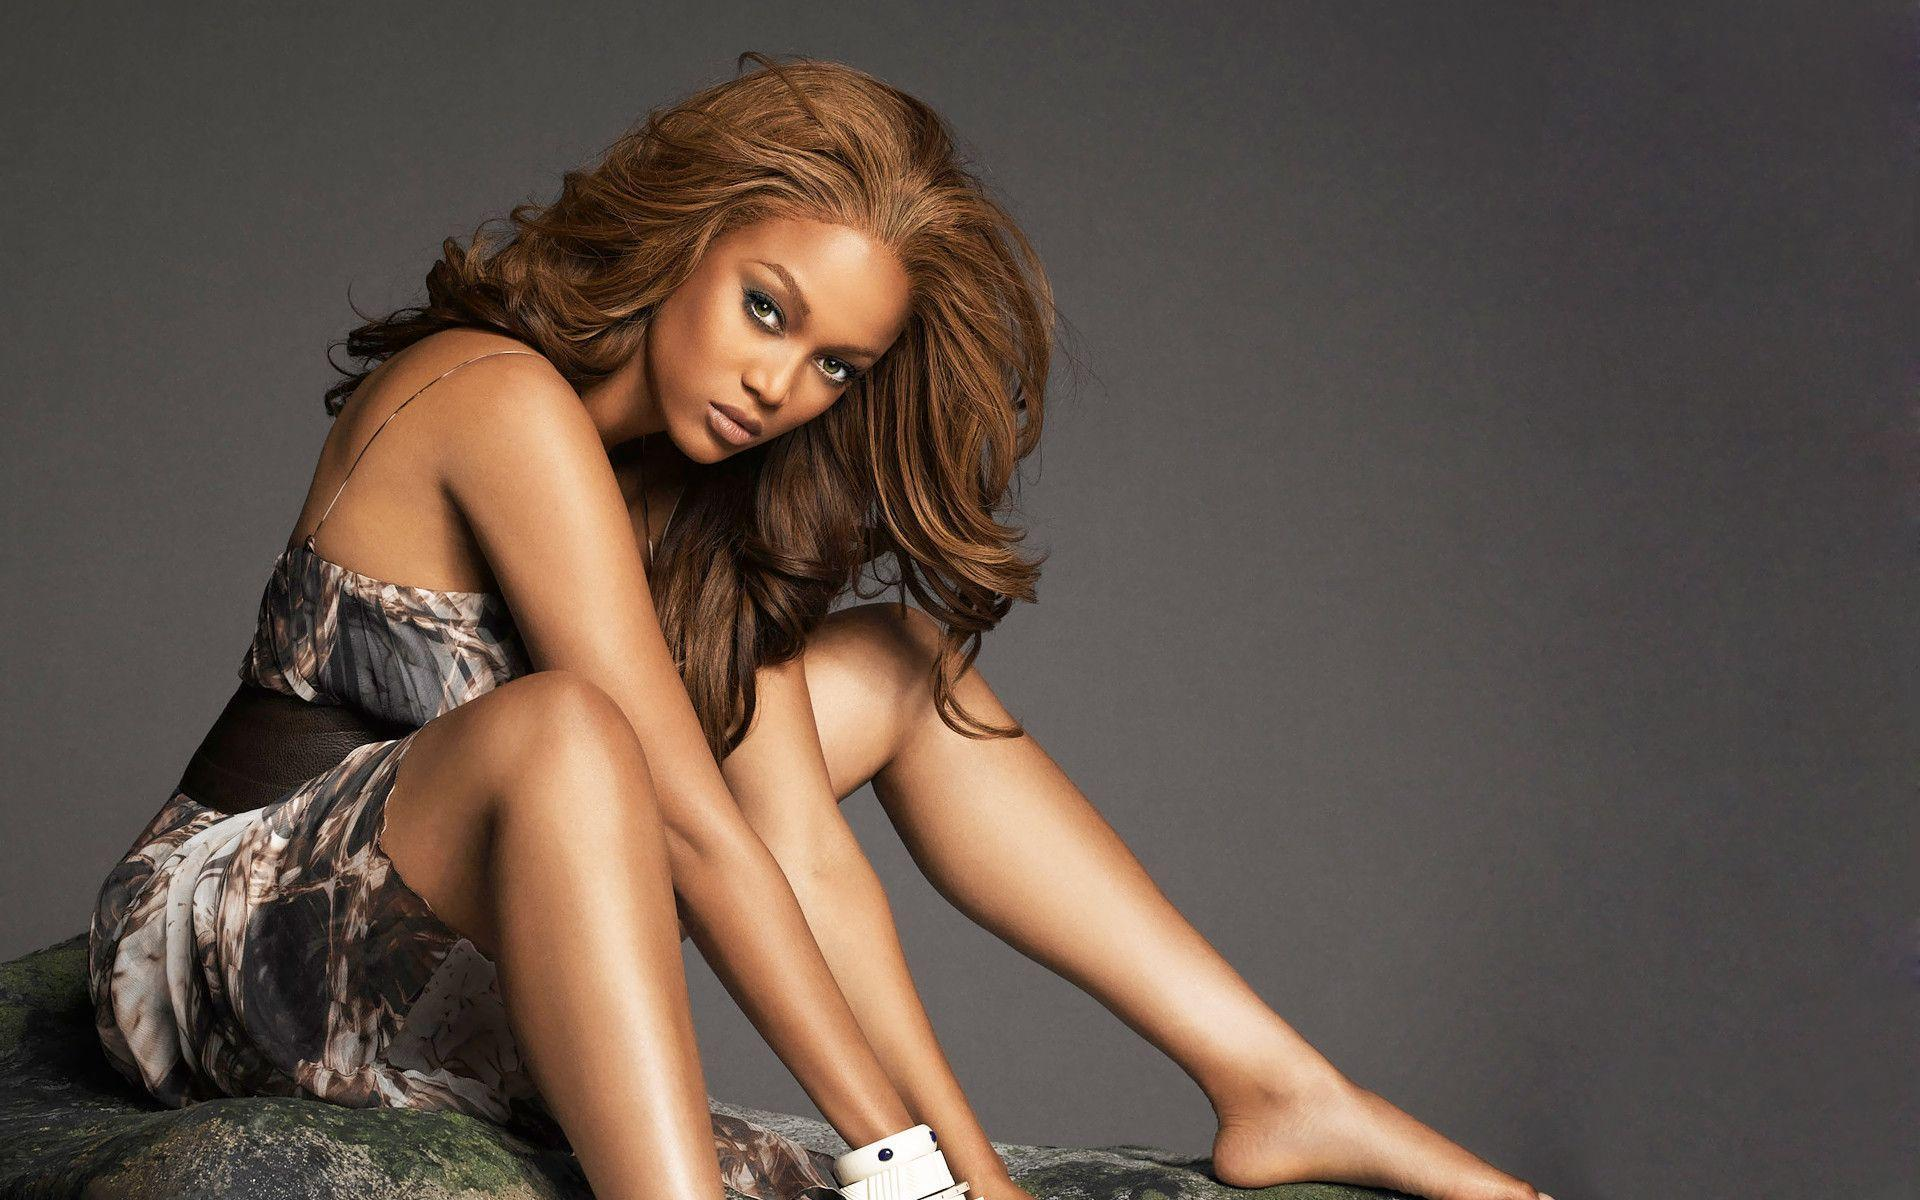 Tyra banks wallpapers wallpaper cave for Model height